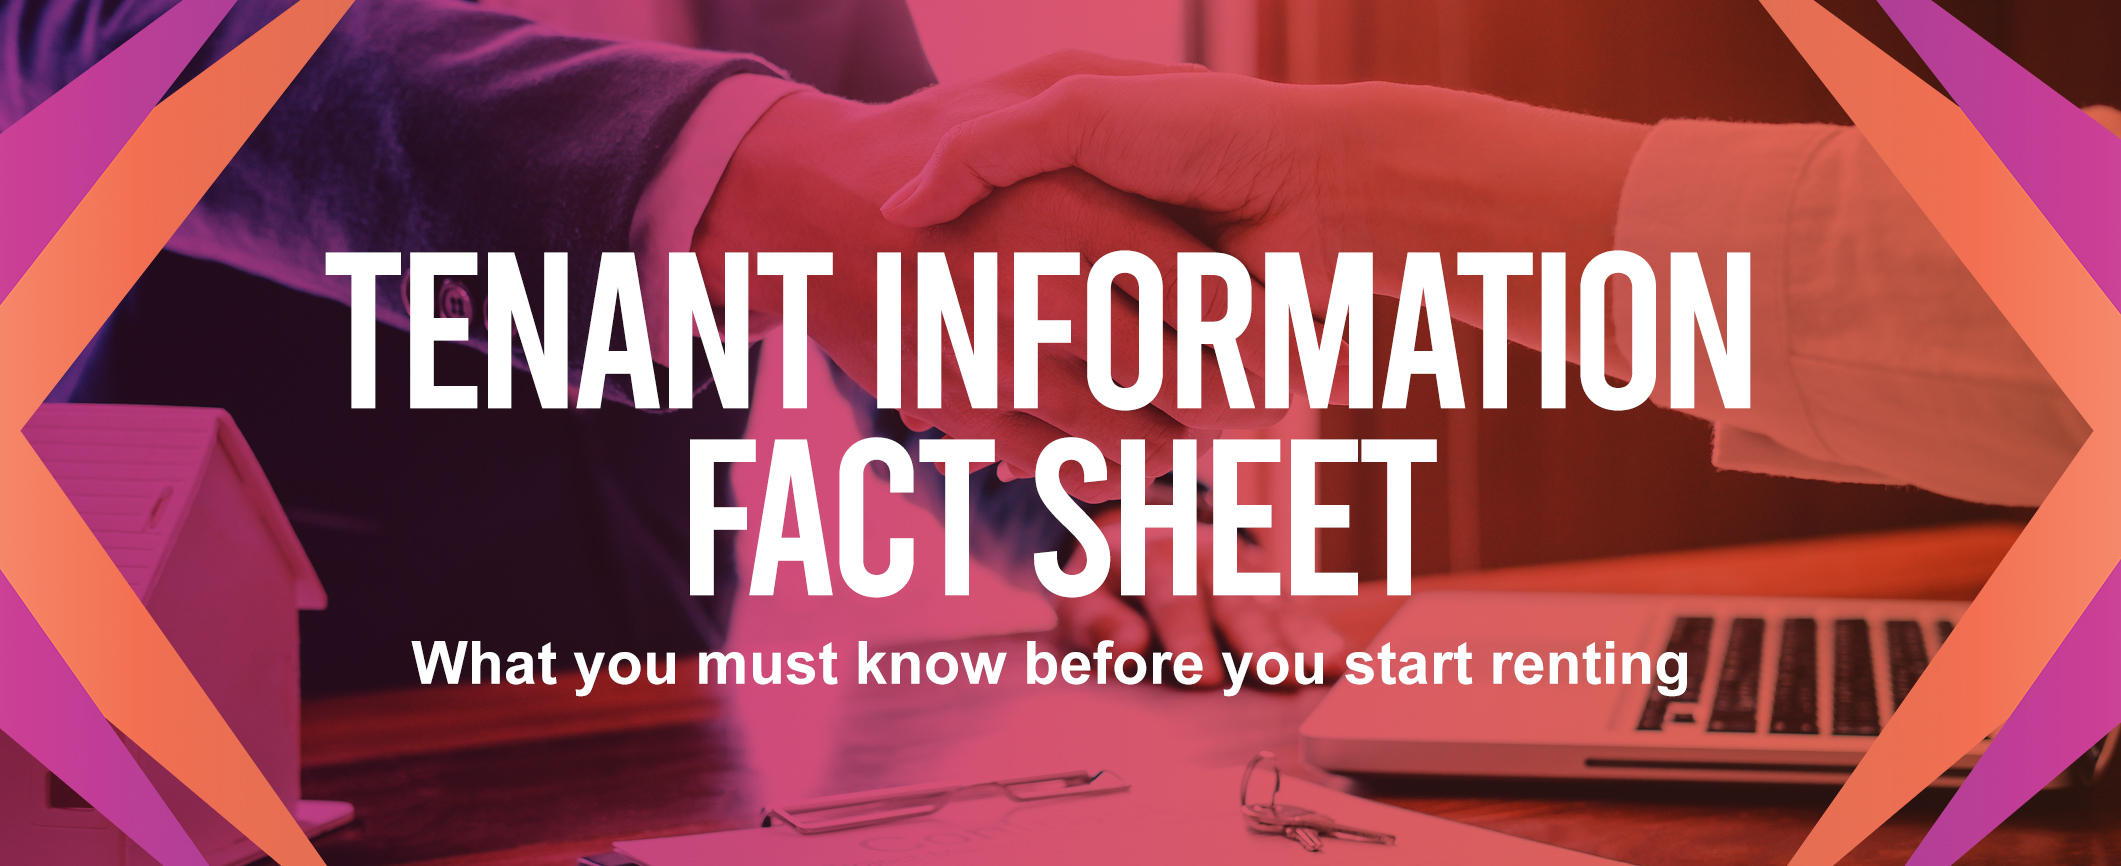 Tenant information Fact Sheet